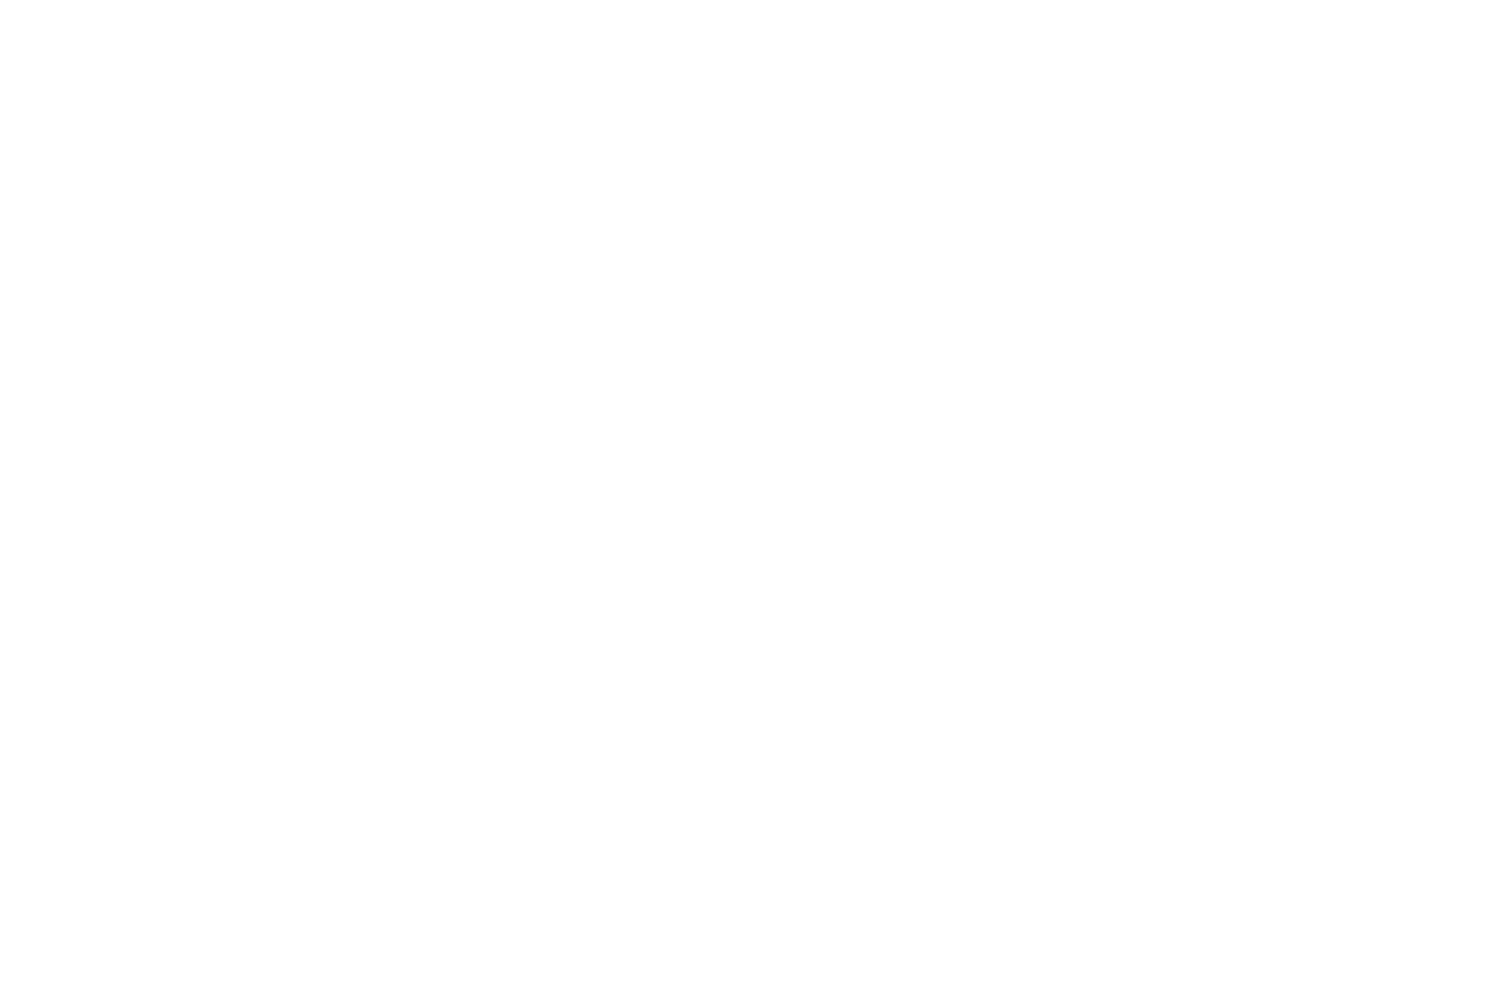 Rupa Chaturvedi Photography